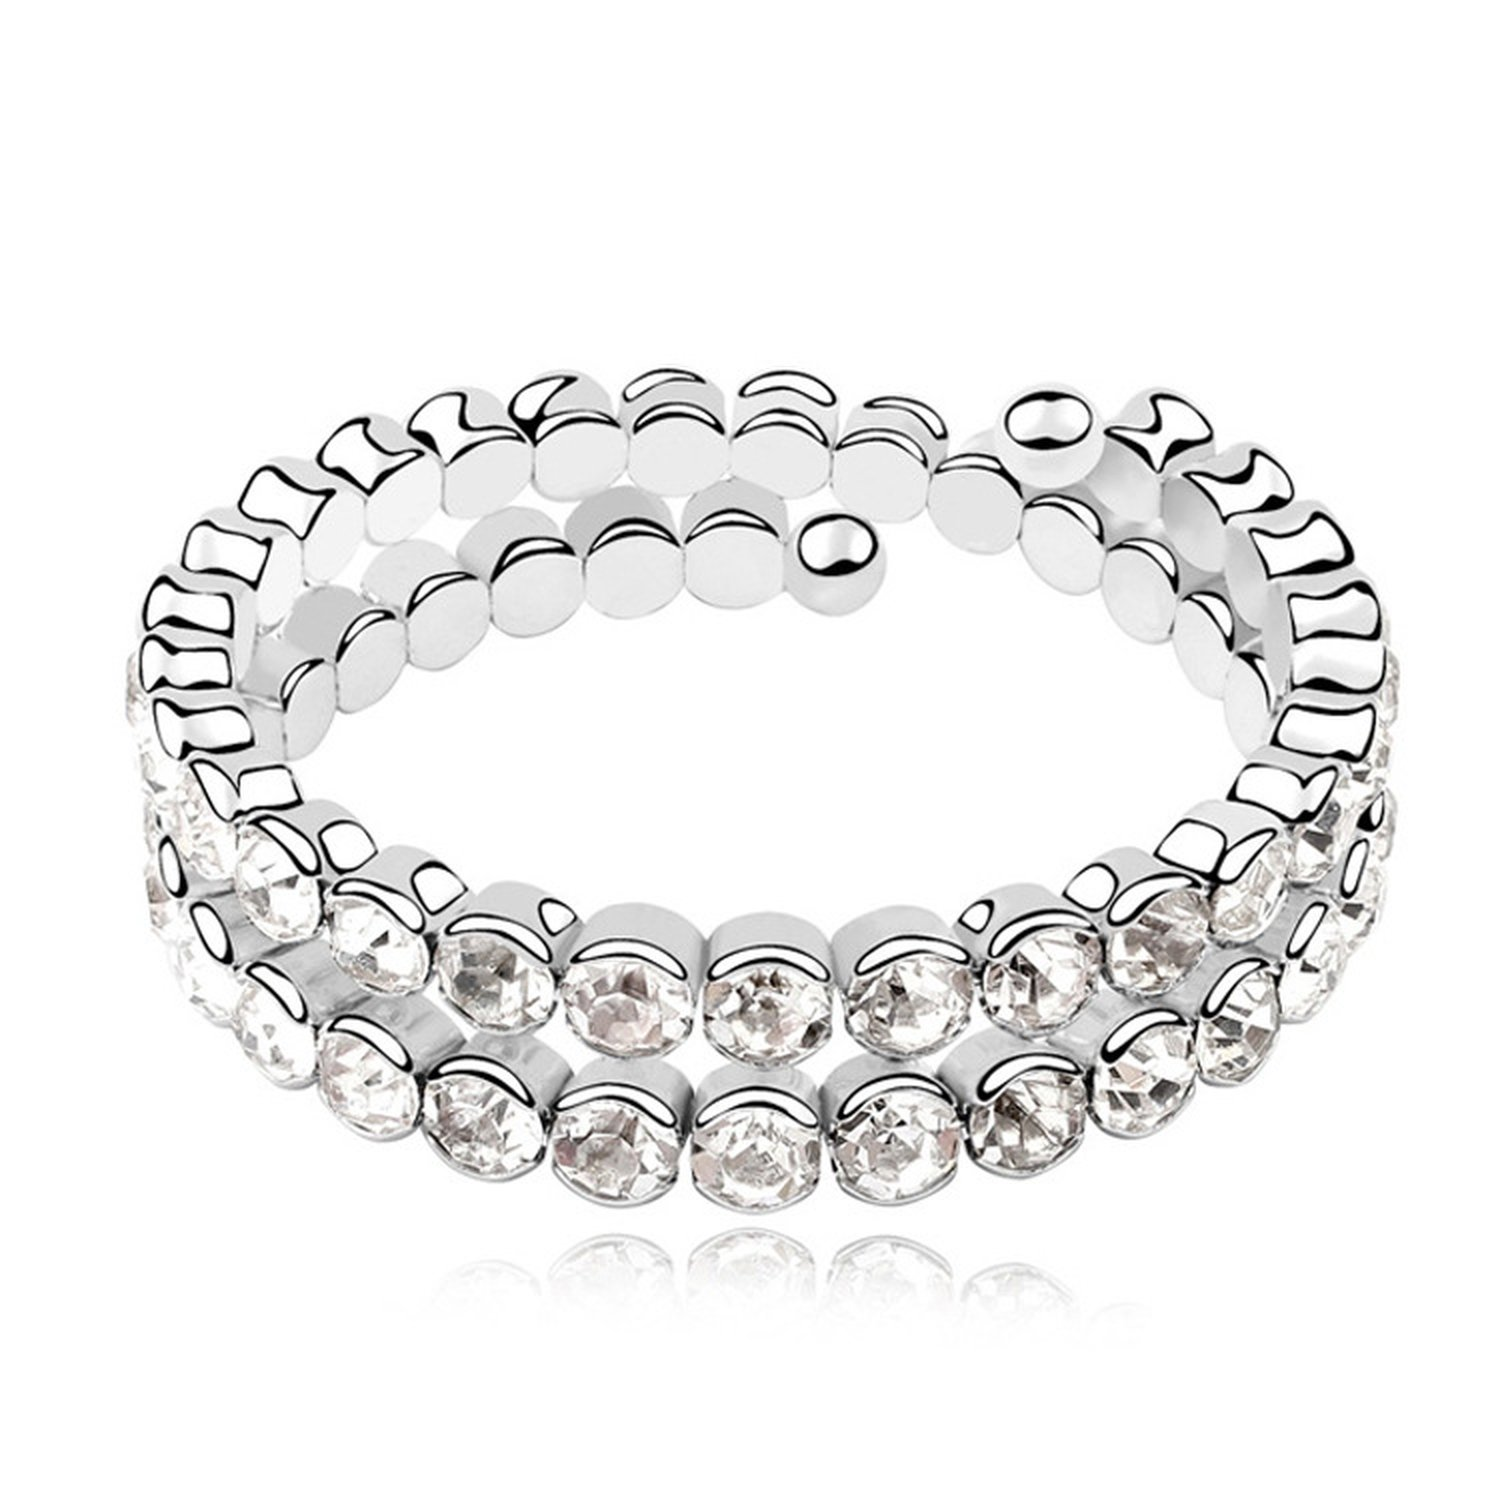 Flower-Bud Korean Fine Bracelet High-End Handmade Crystal Bangle - Unblemished Beauty Multi-Layer Bracelet,White 3-129